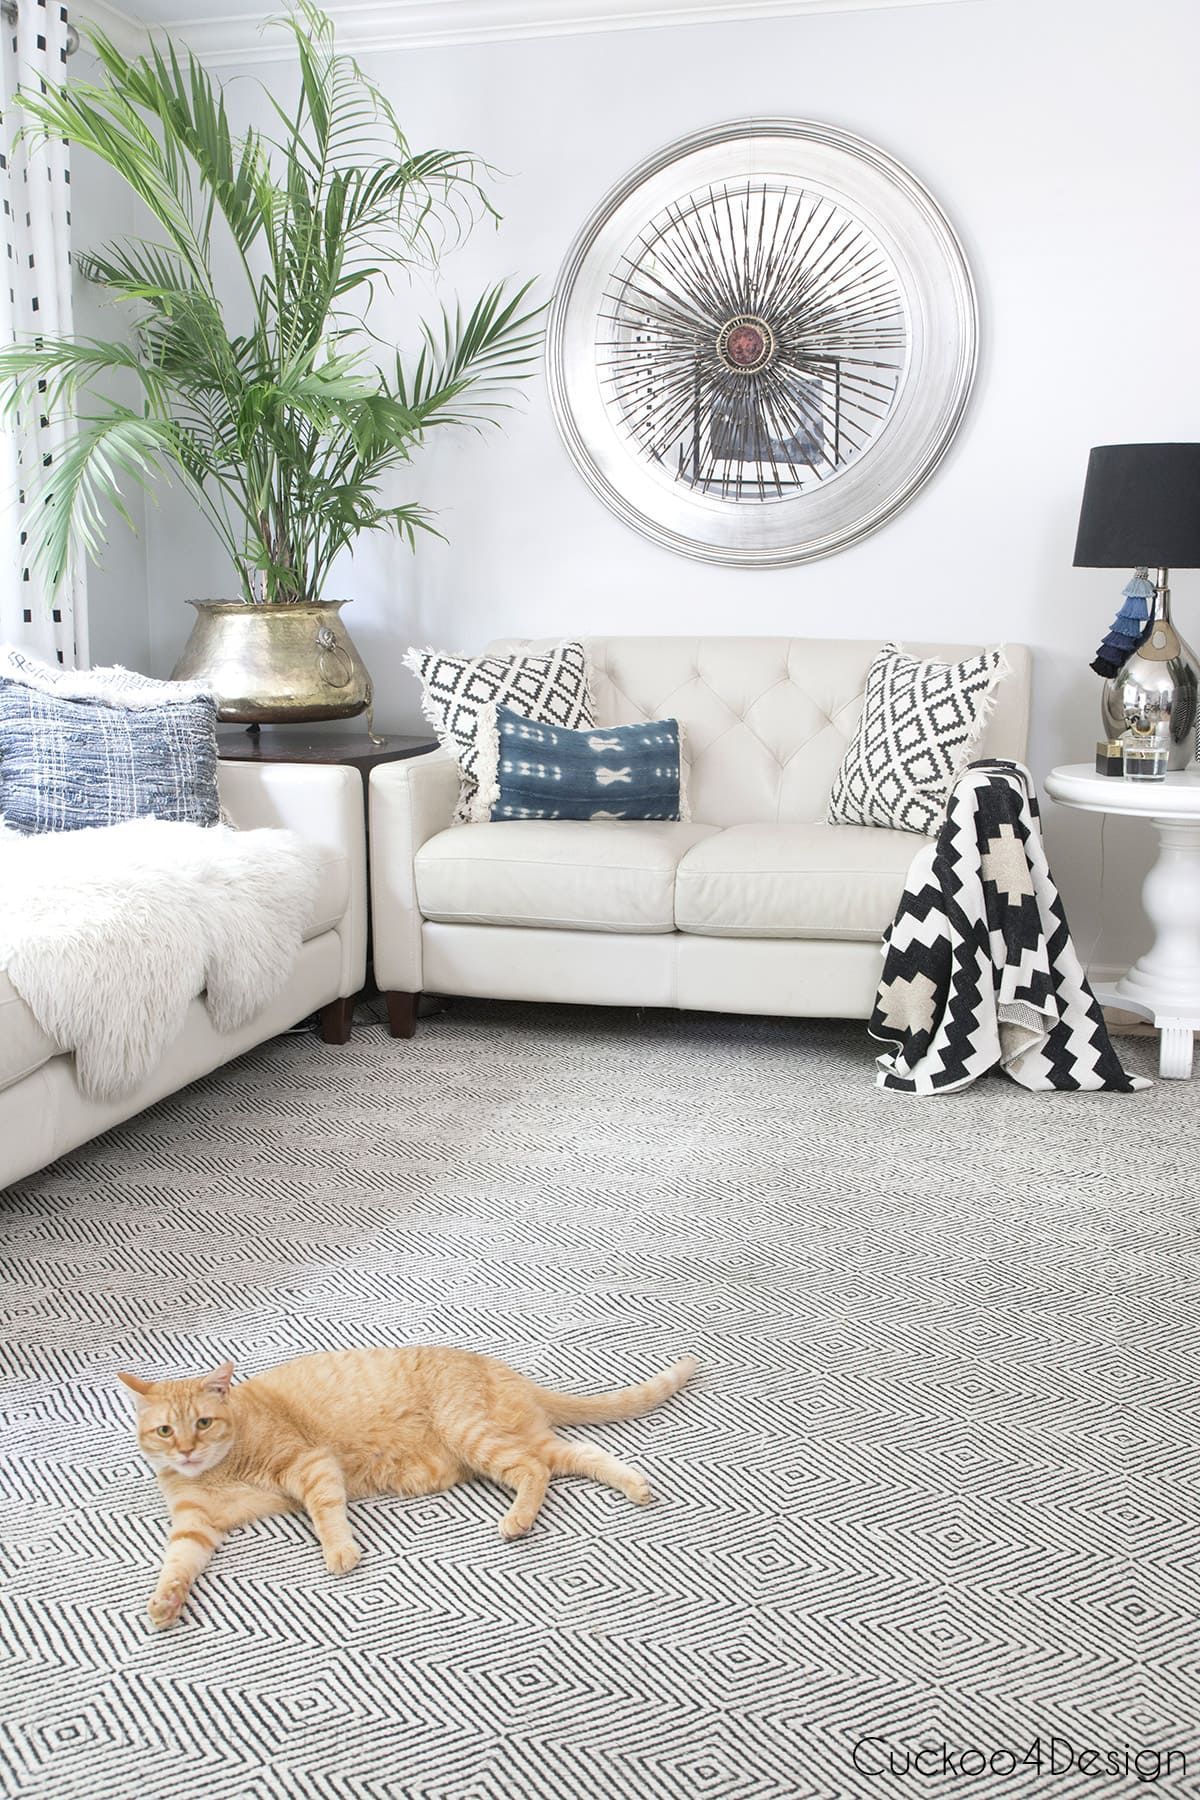 crosswave pet pro review on lat weave area rug